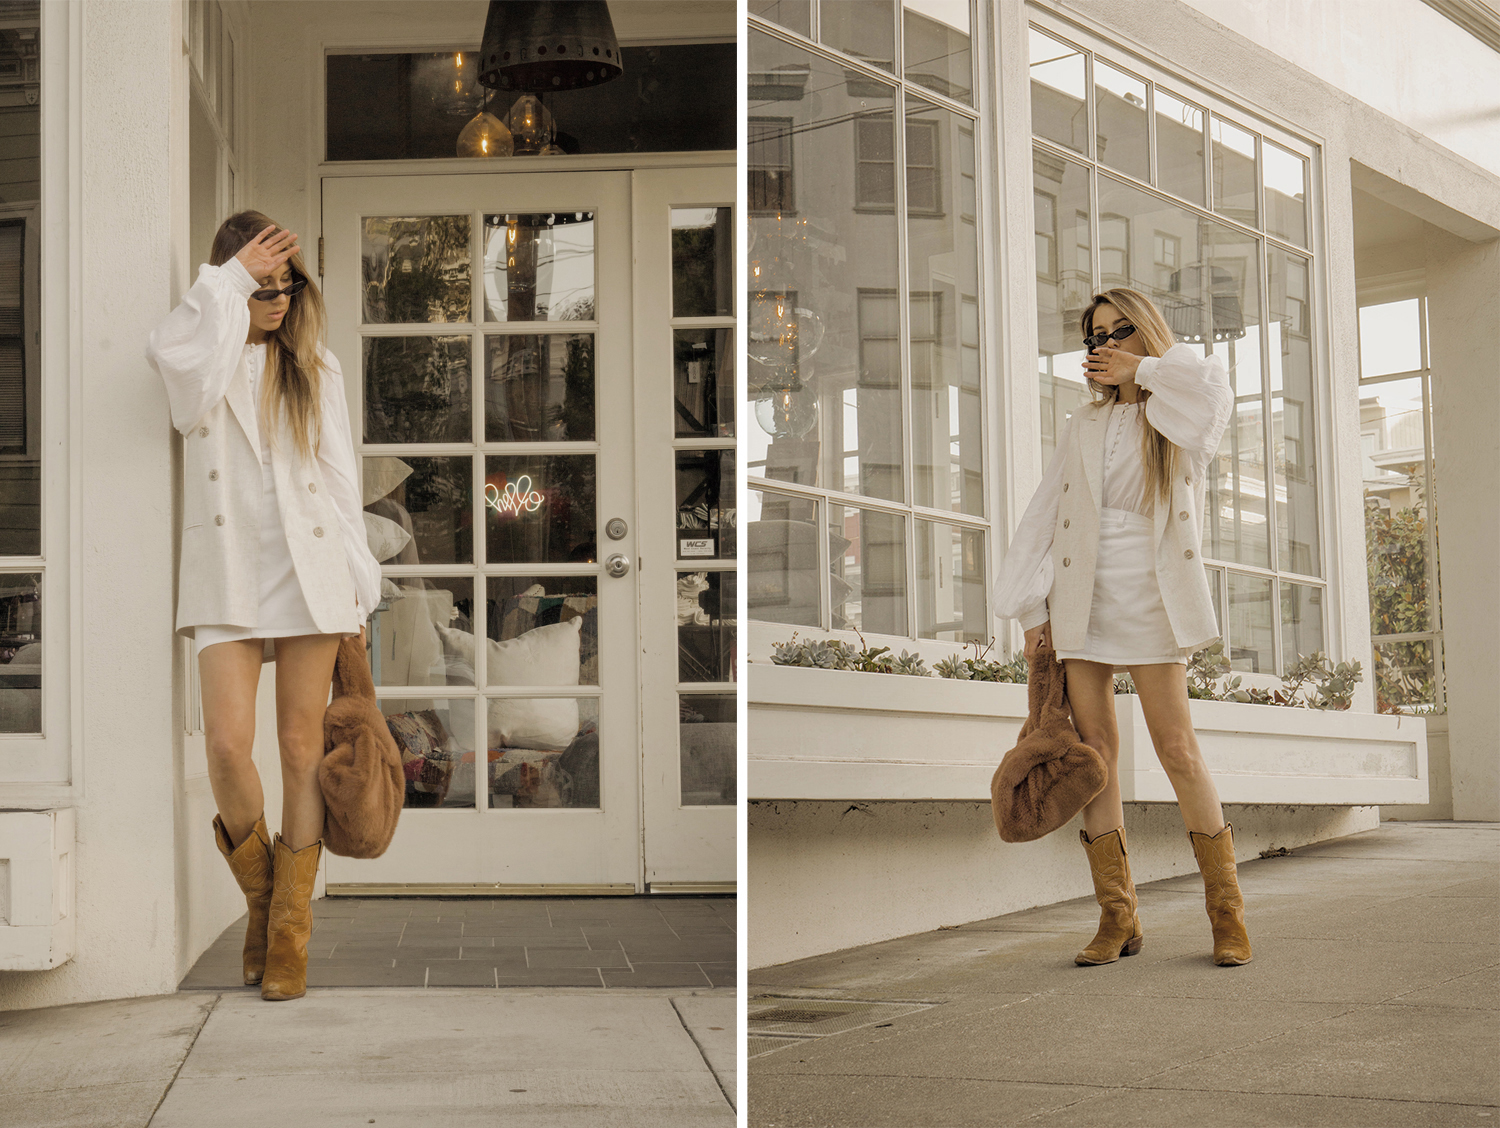 total_all_white_outfit_look_street_style_western_boots_isabel_marant_inspired_fur_bag_vest_denim_skirt_summer_2018_trend_lena_juice_the_white_ocean_02